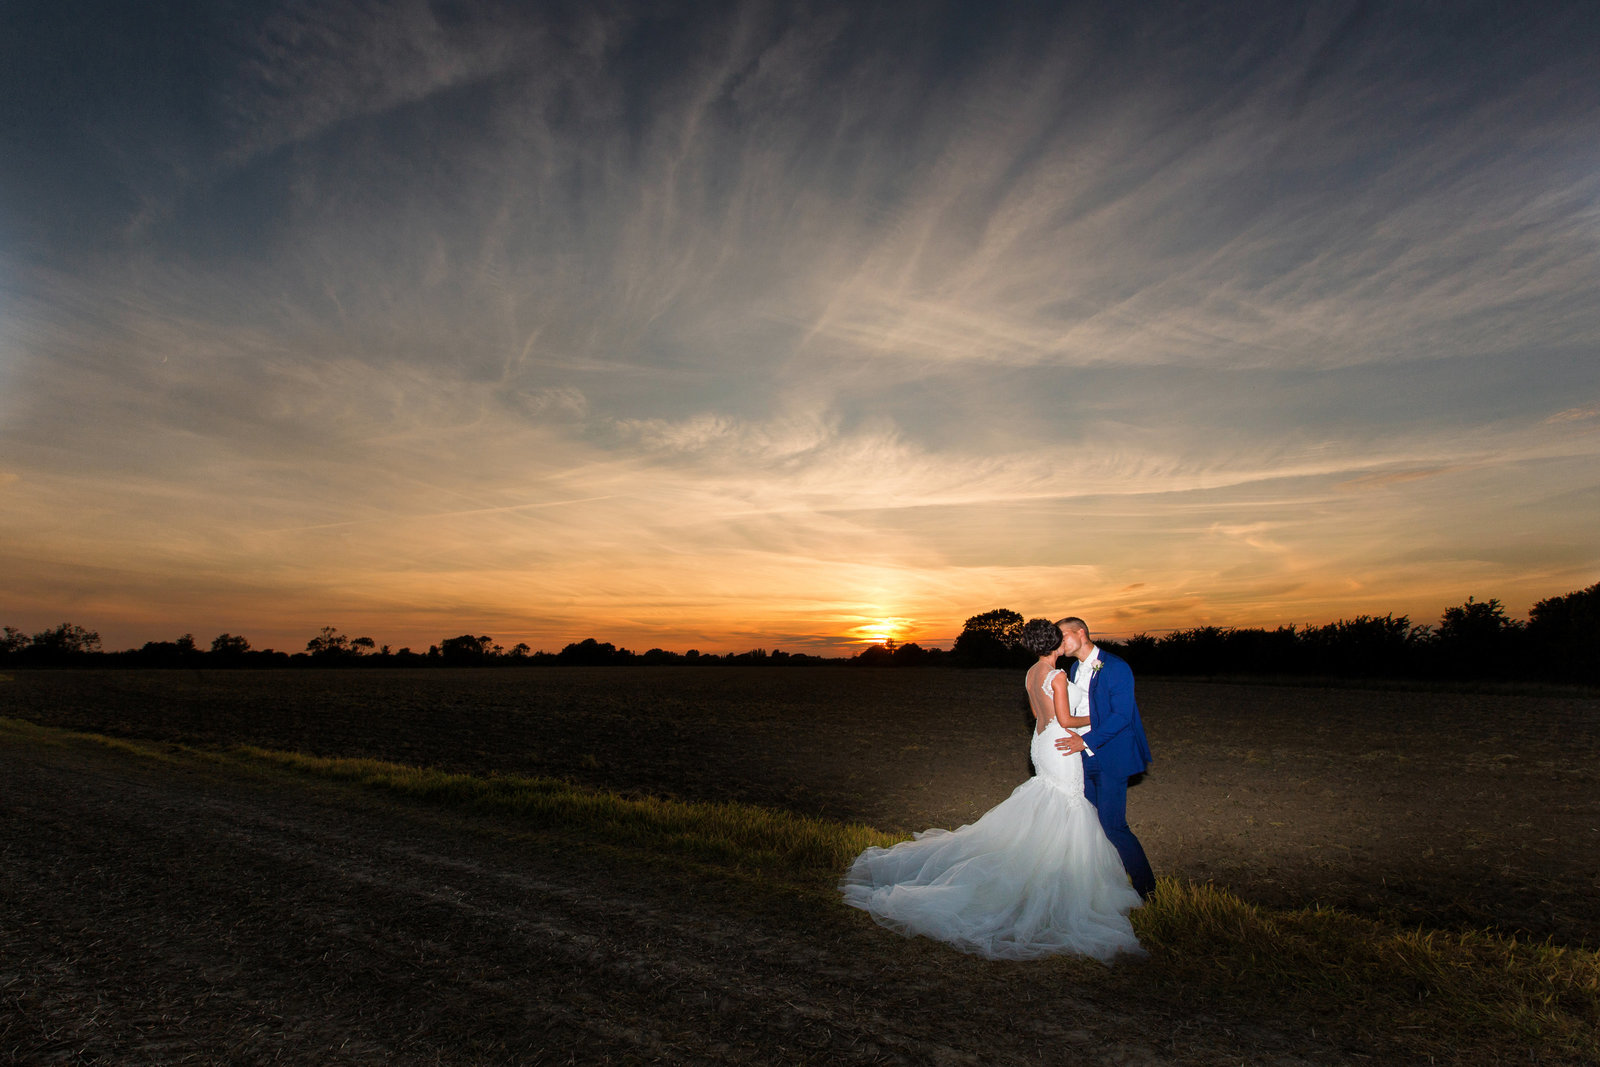 adorlee-258-wedding-photographer-chichester-west-sussex